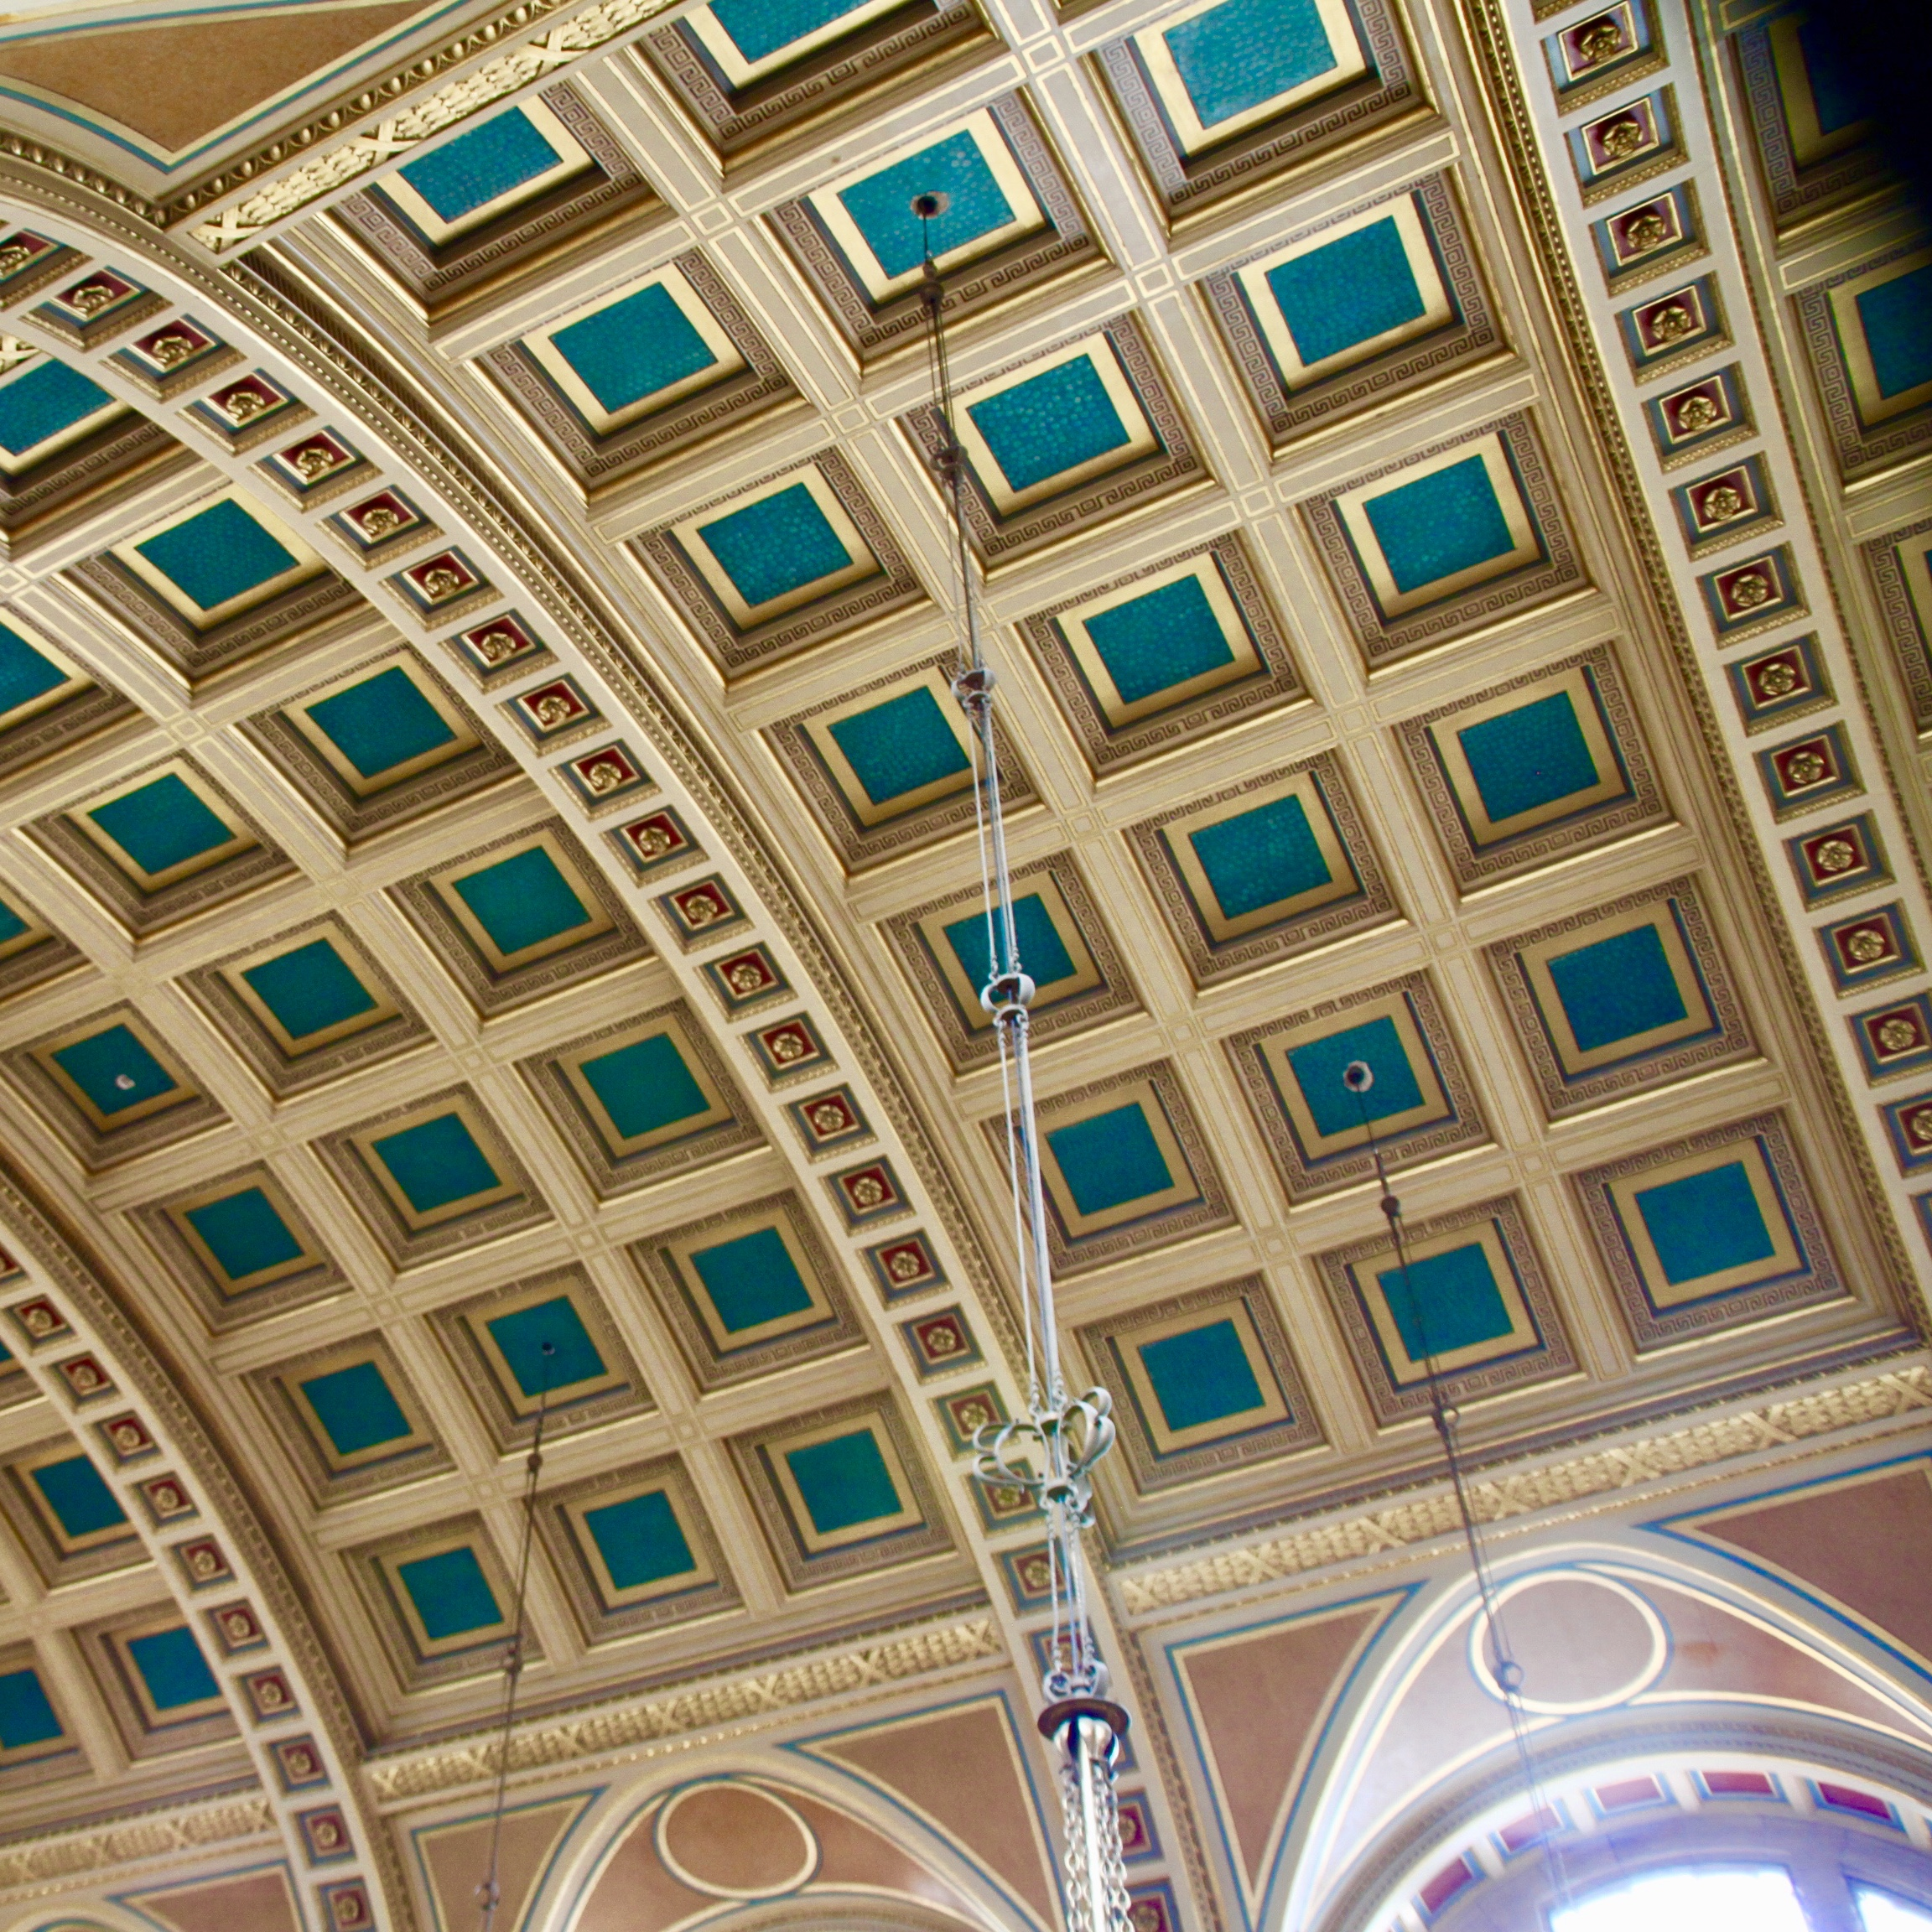 Kelvingrove Art Gallery and Museum, Glasgow, vaulted ceiling by Jez Braithwaite